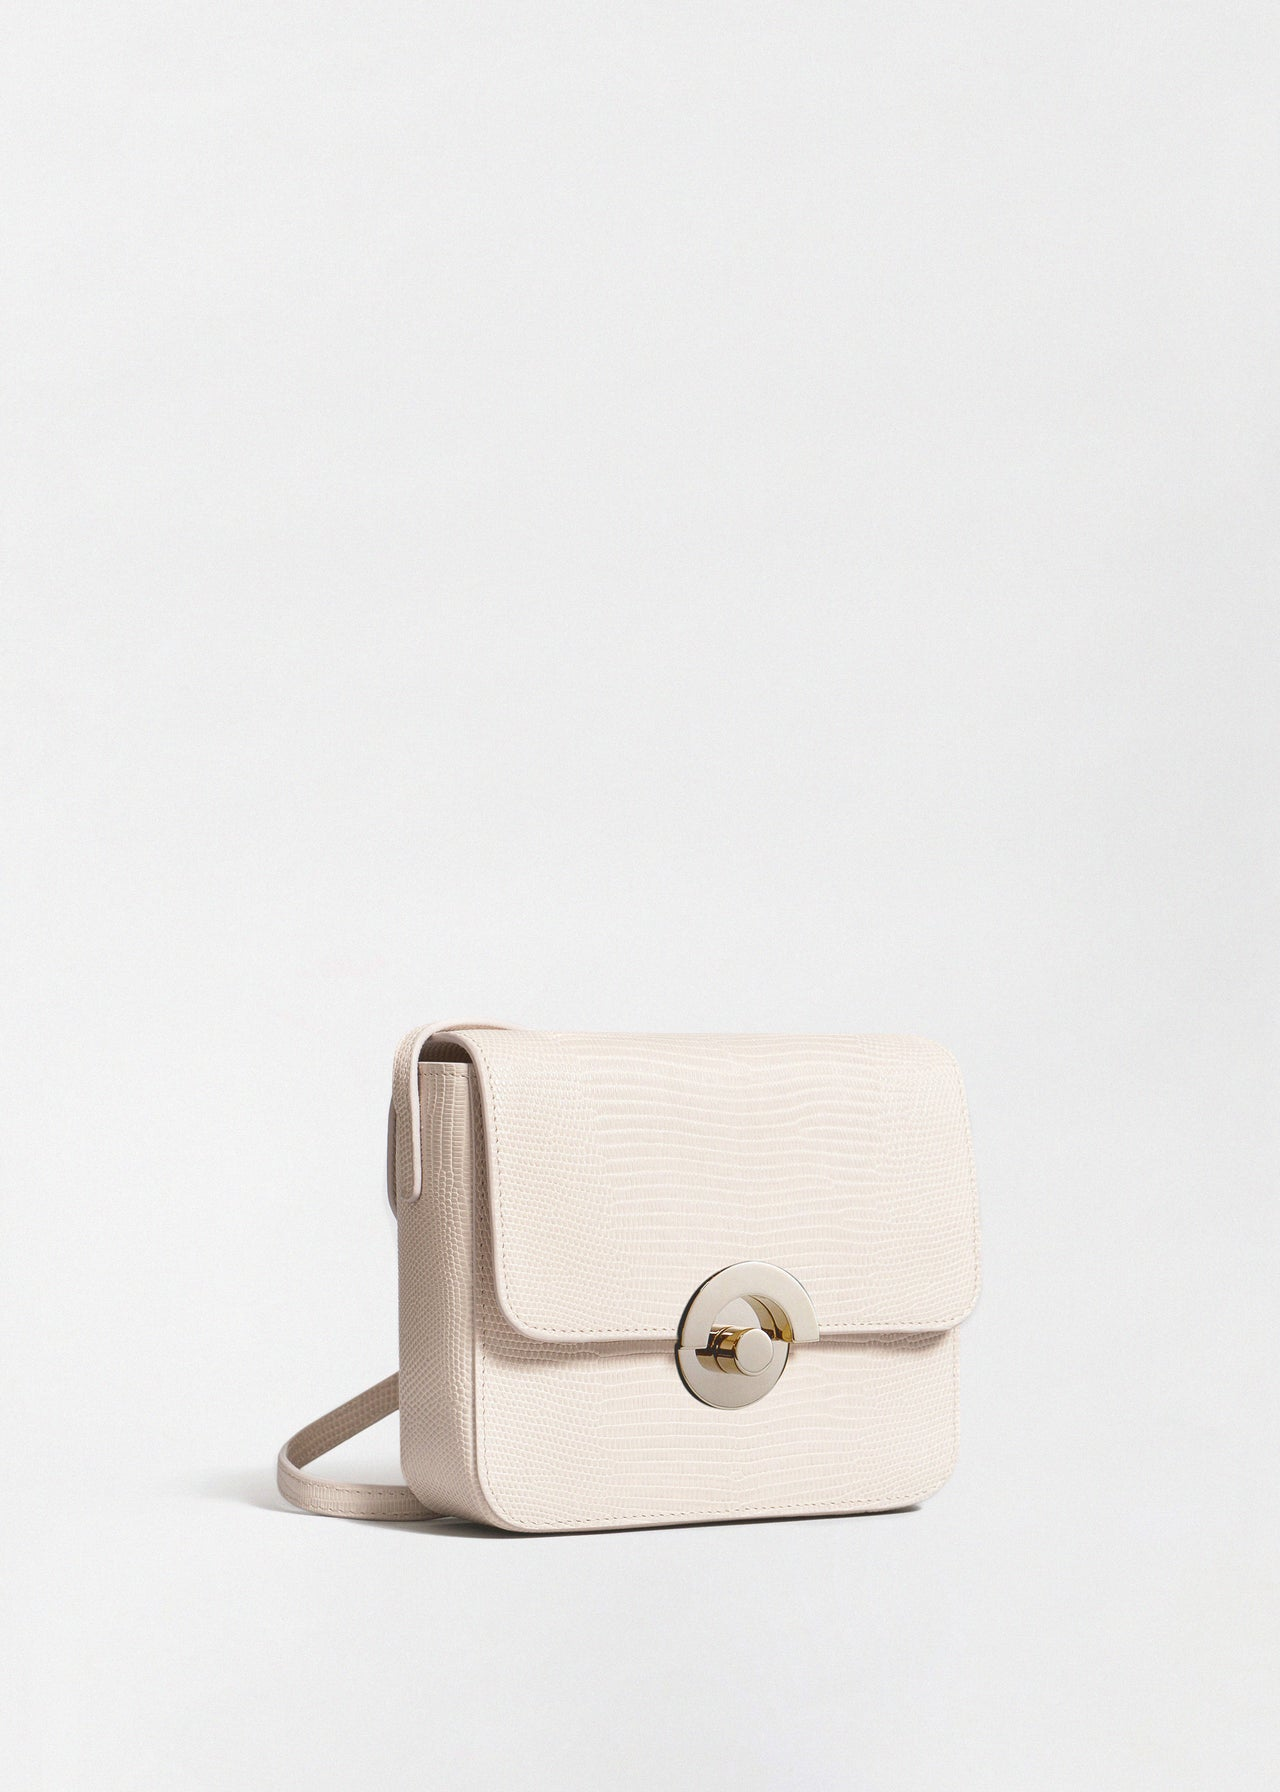 Small Box Bag in Embossed Leather - Sand